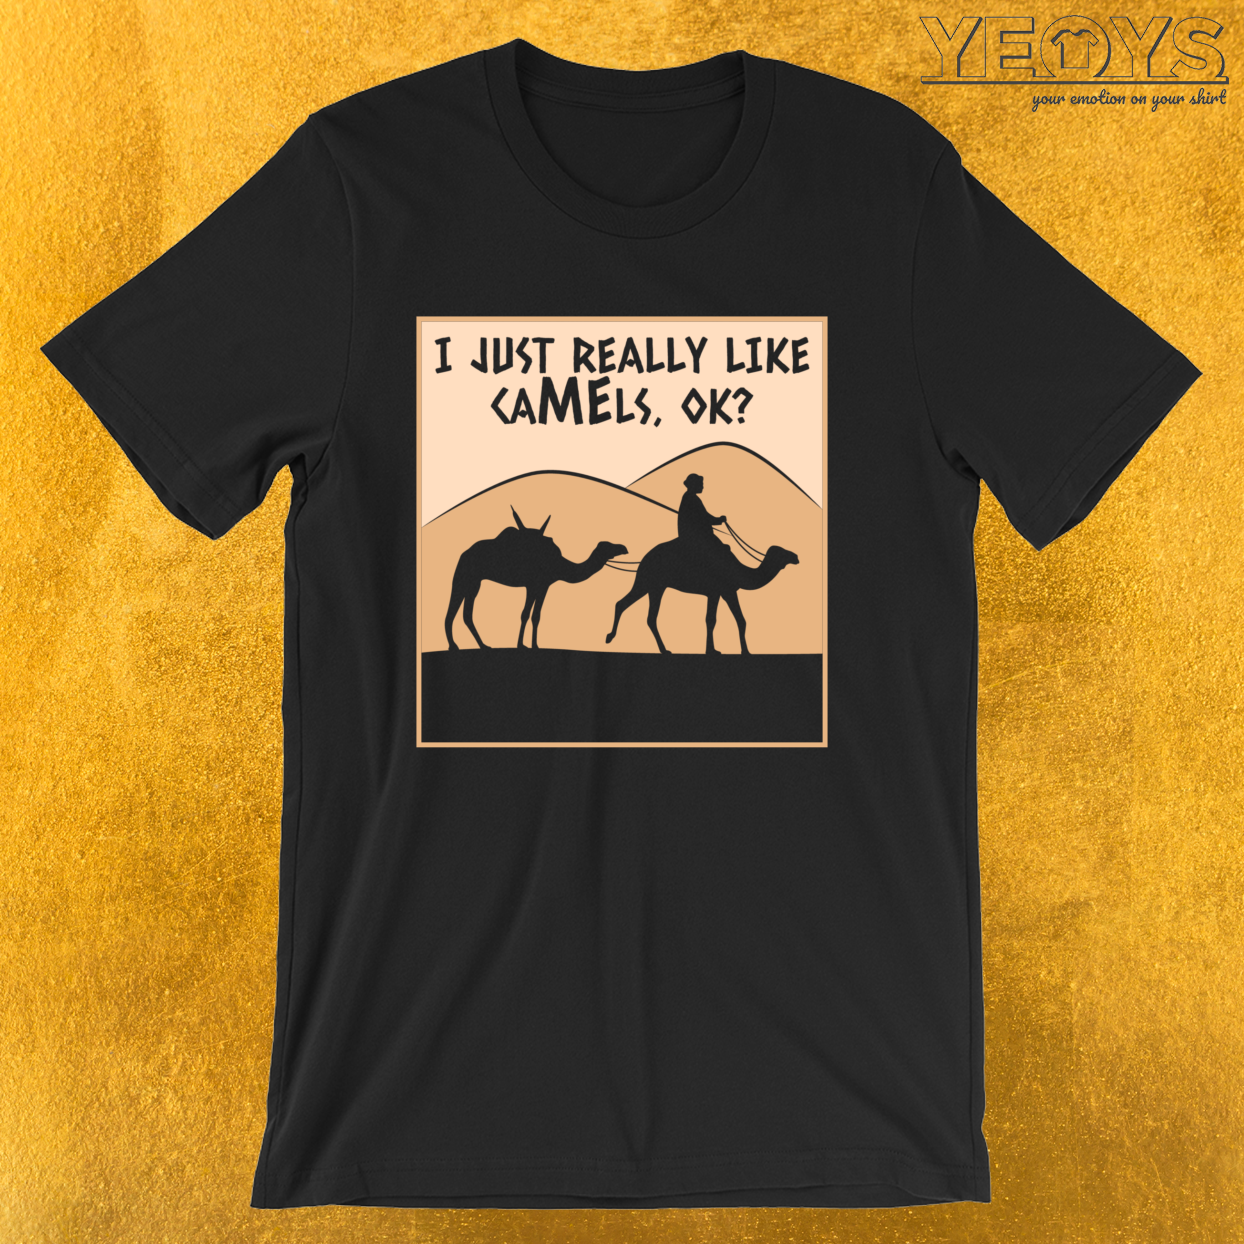 I Just Really Like Camels Ok – Funny Camel Tee